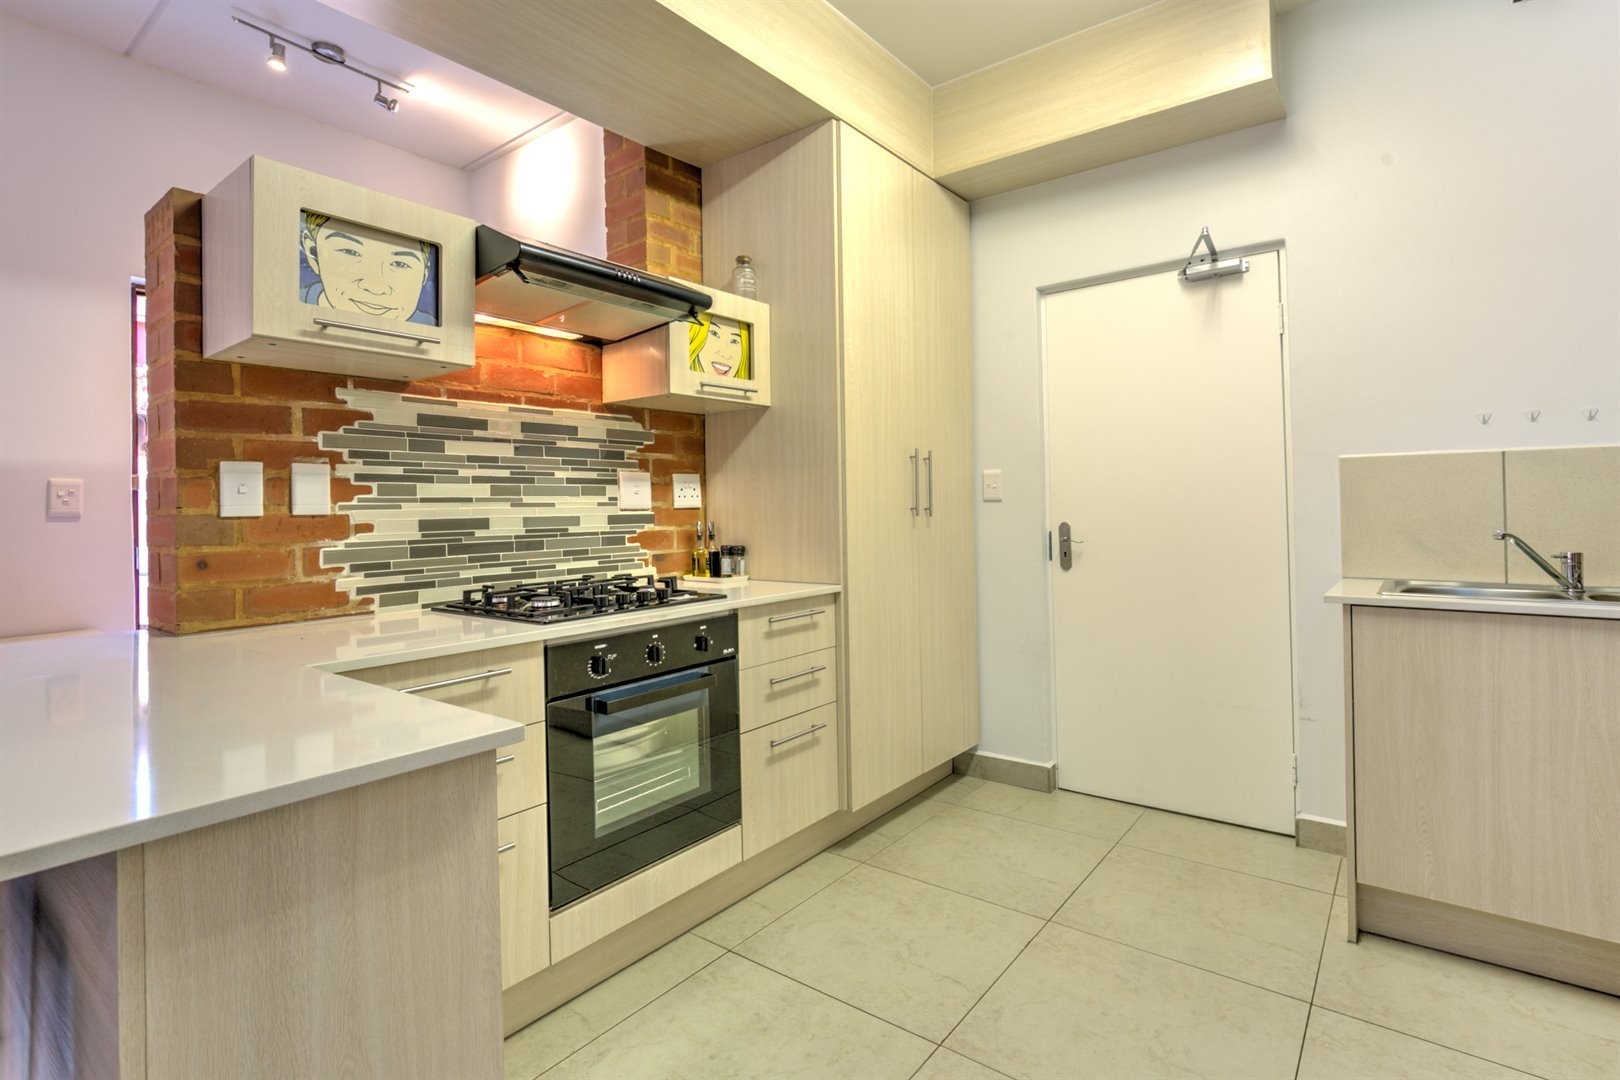 Townhouse for sale in fourways 3 bedroom 13486558 12 31 for Kitchen cupboards fourways